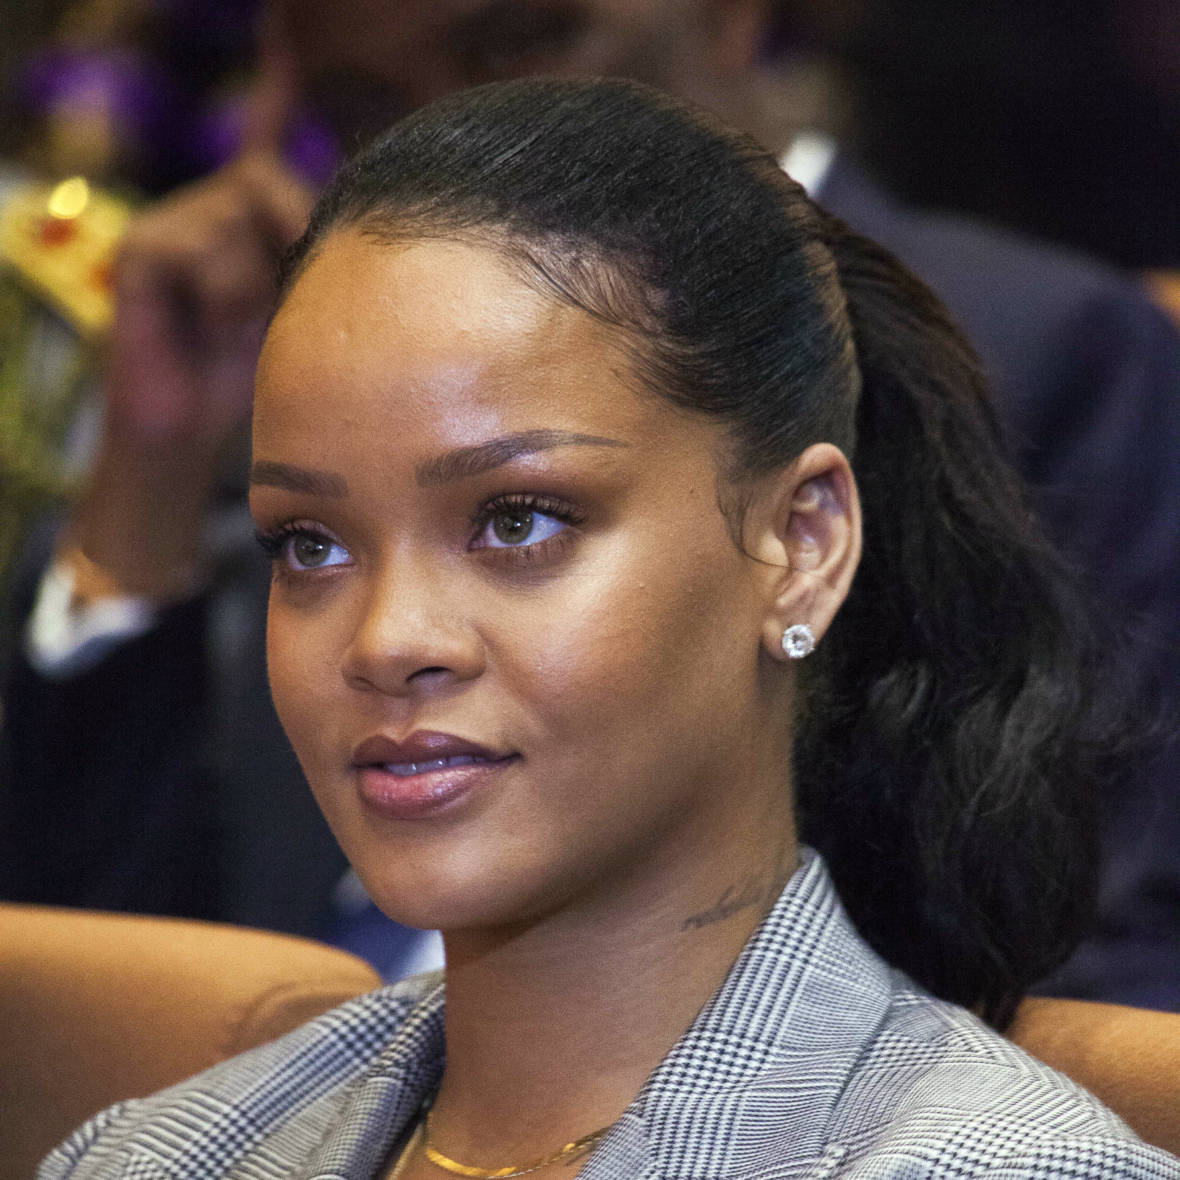 Snapchat's Stock Sinks After Rihanna Denounces Domestic Violence Ad